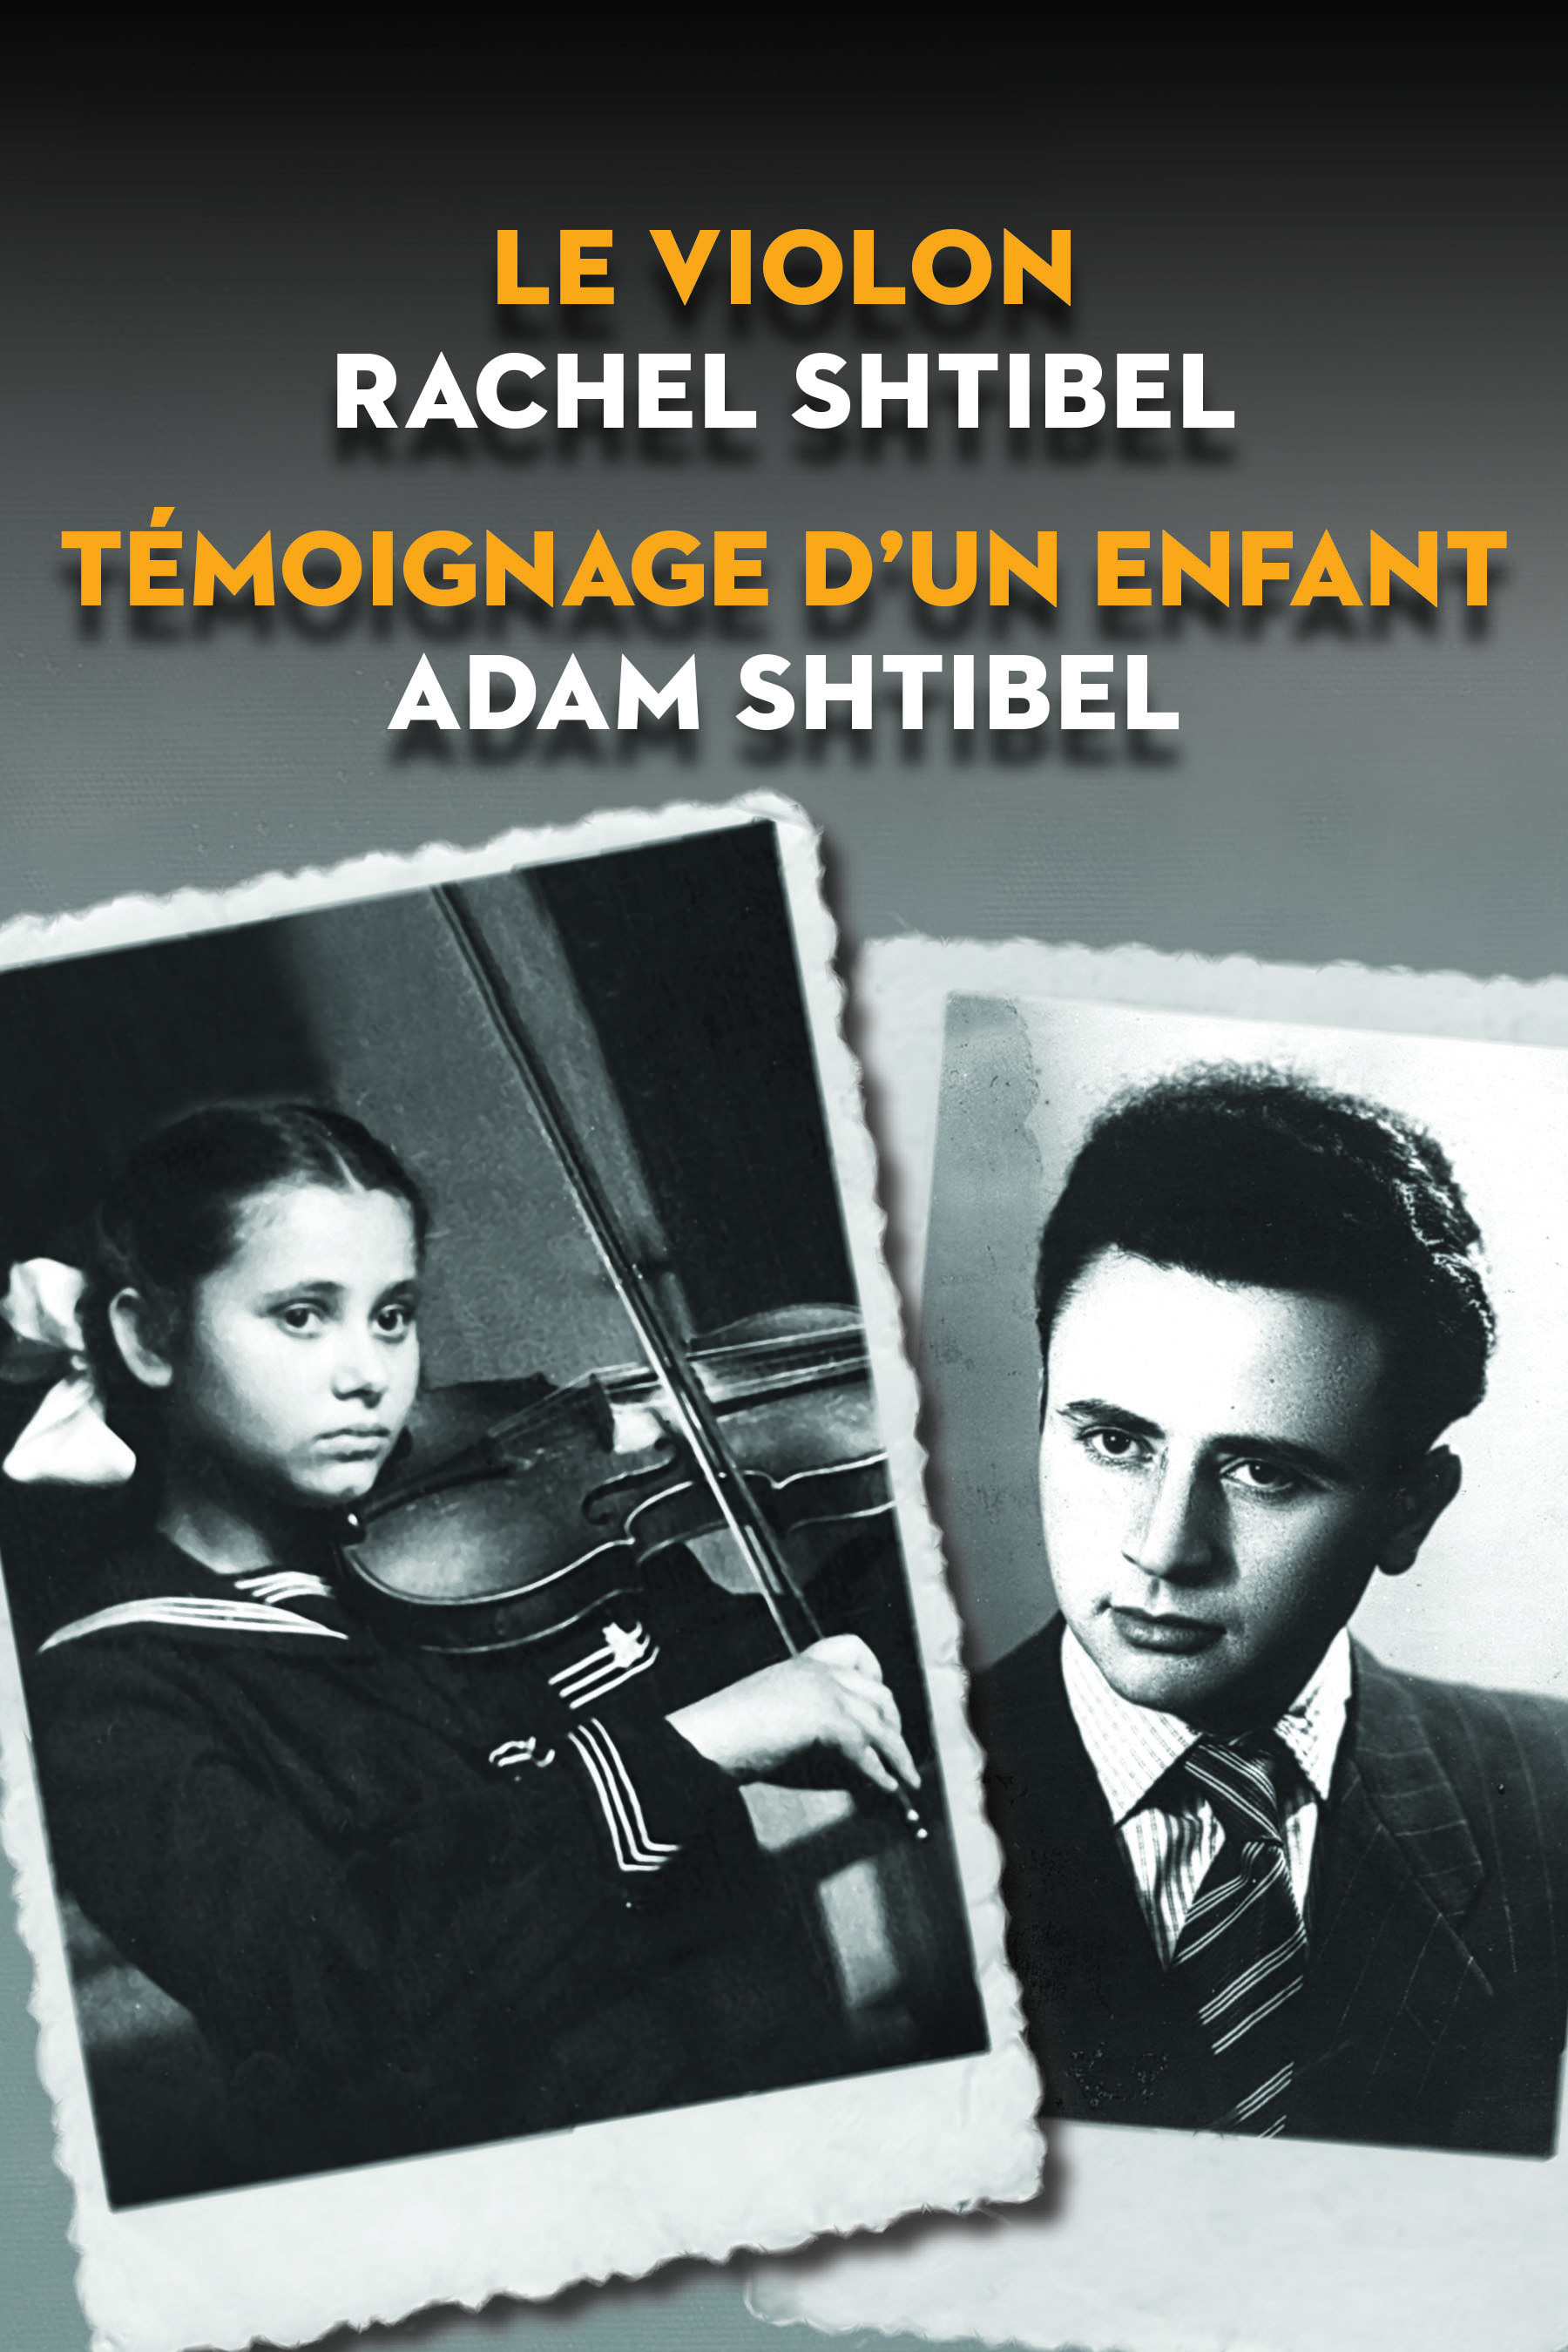 Cover of Le Violon